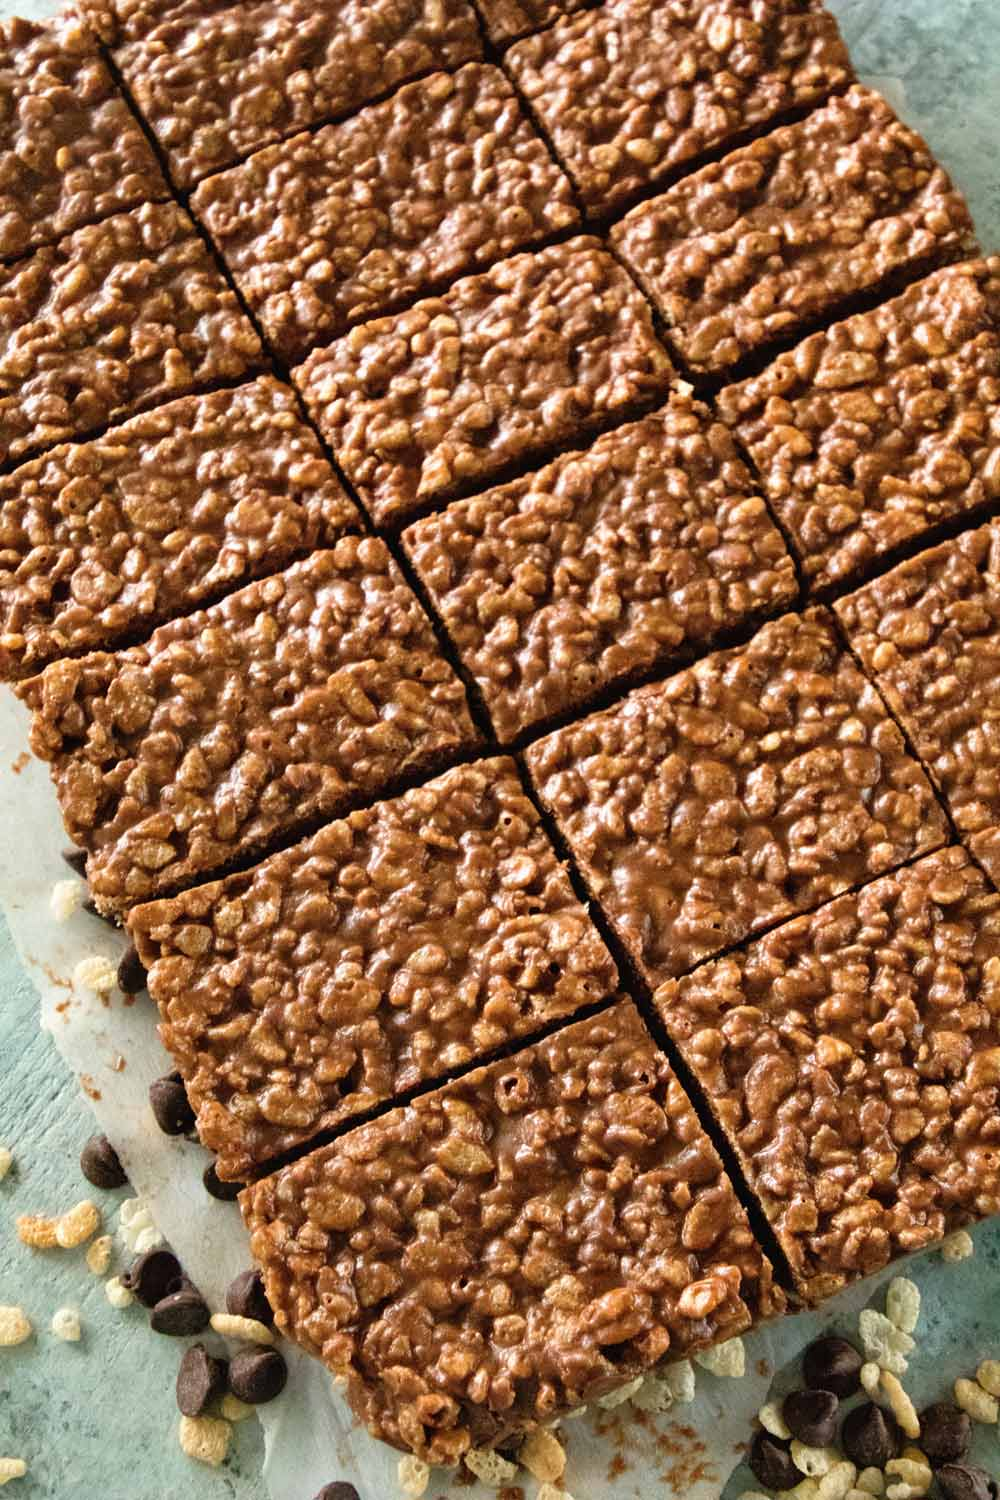 Dig into this Chocolate Peanut Butter Rice Krispies Bar Recipe!